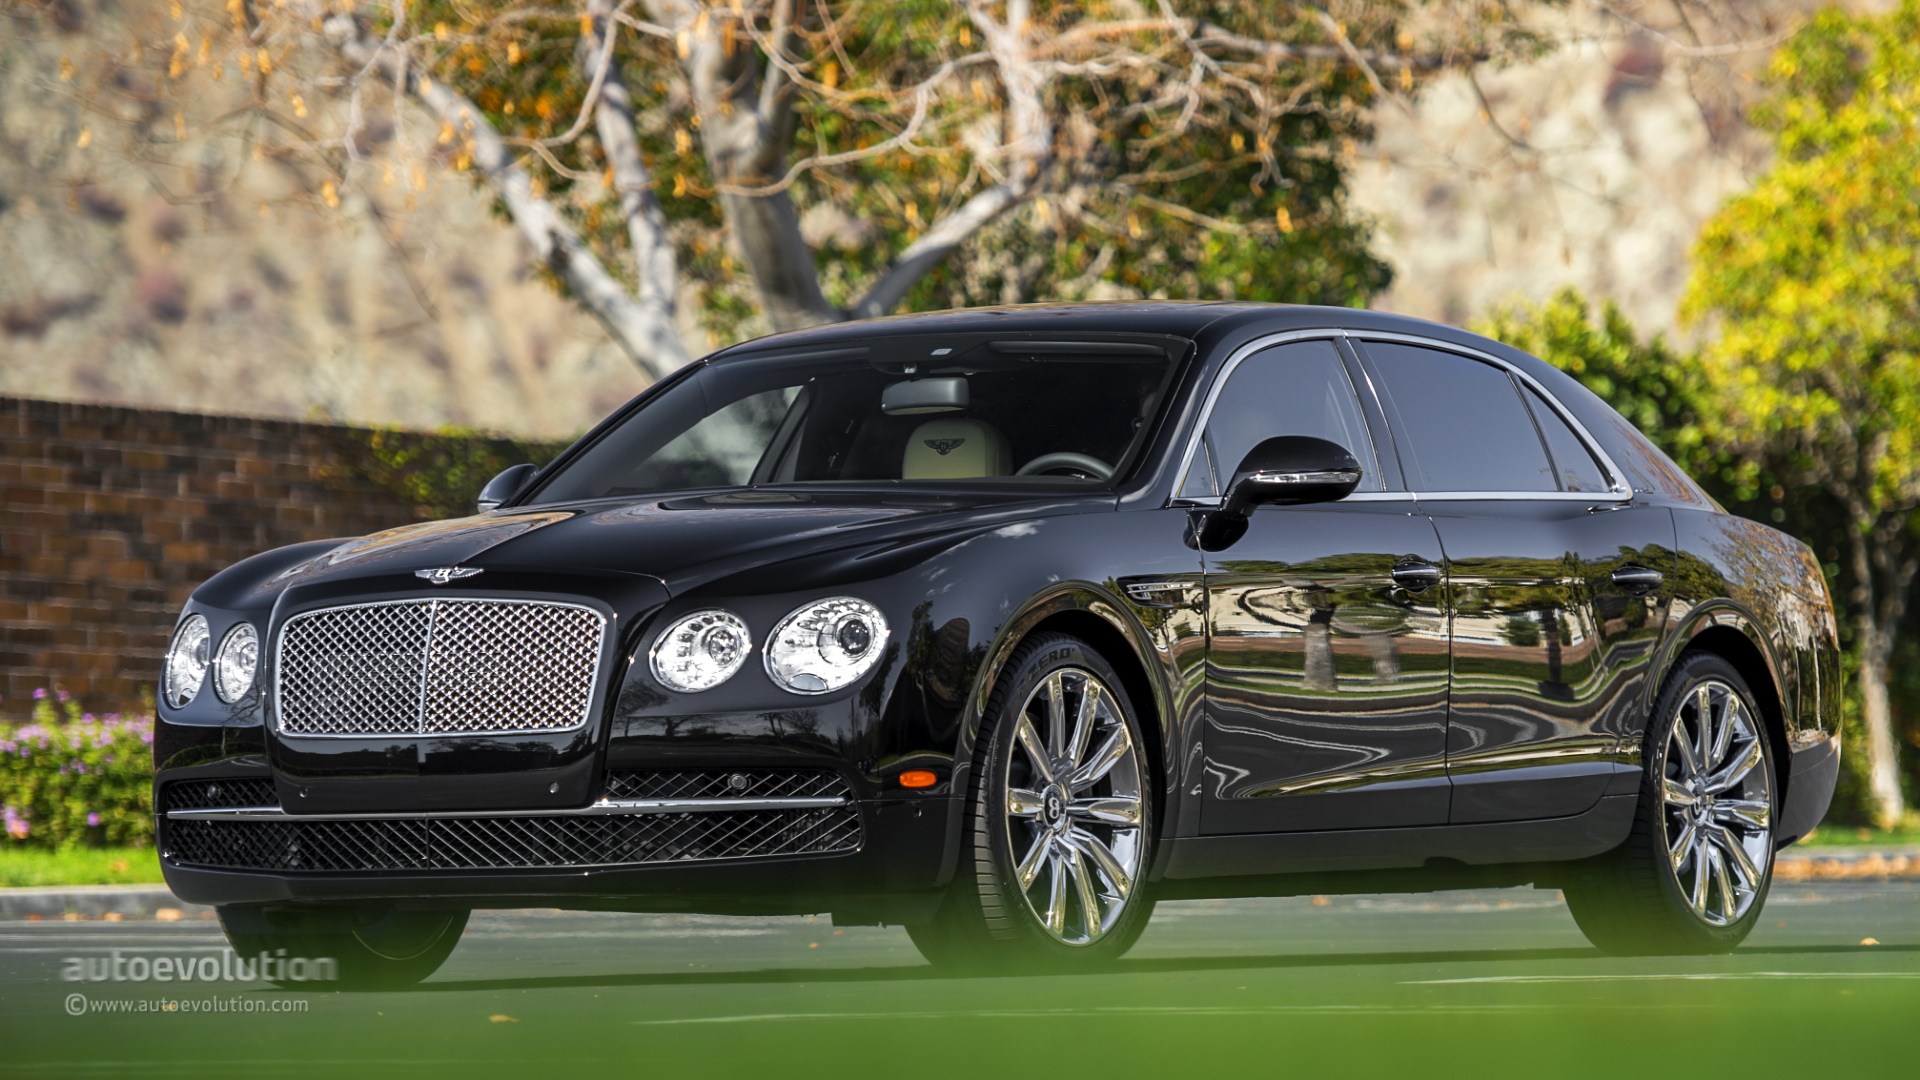 2014 bentley flying spur review autoevolution. Cars Review. Best American Auto & Cars Review